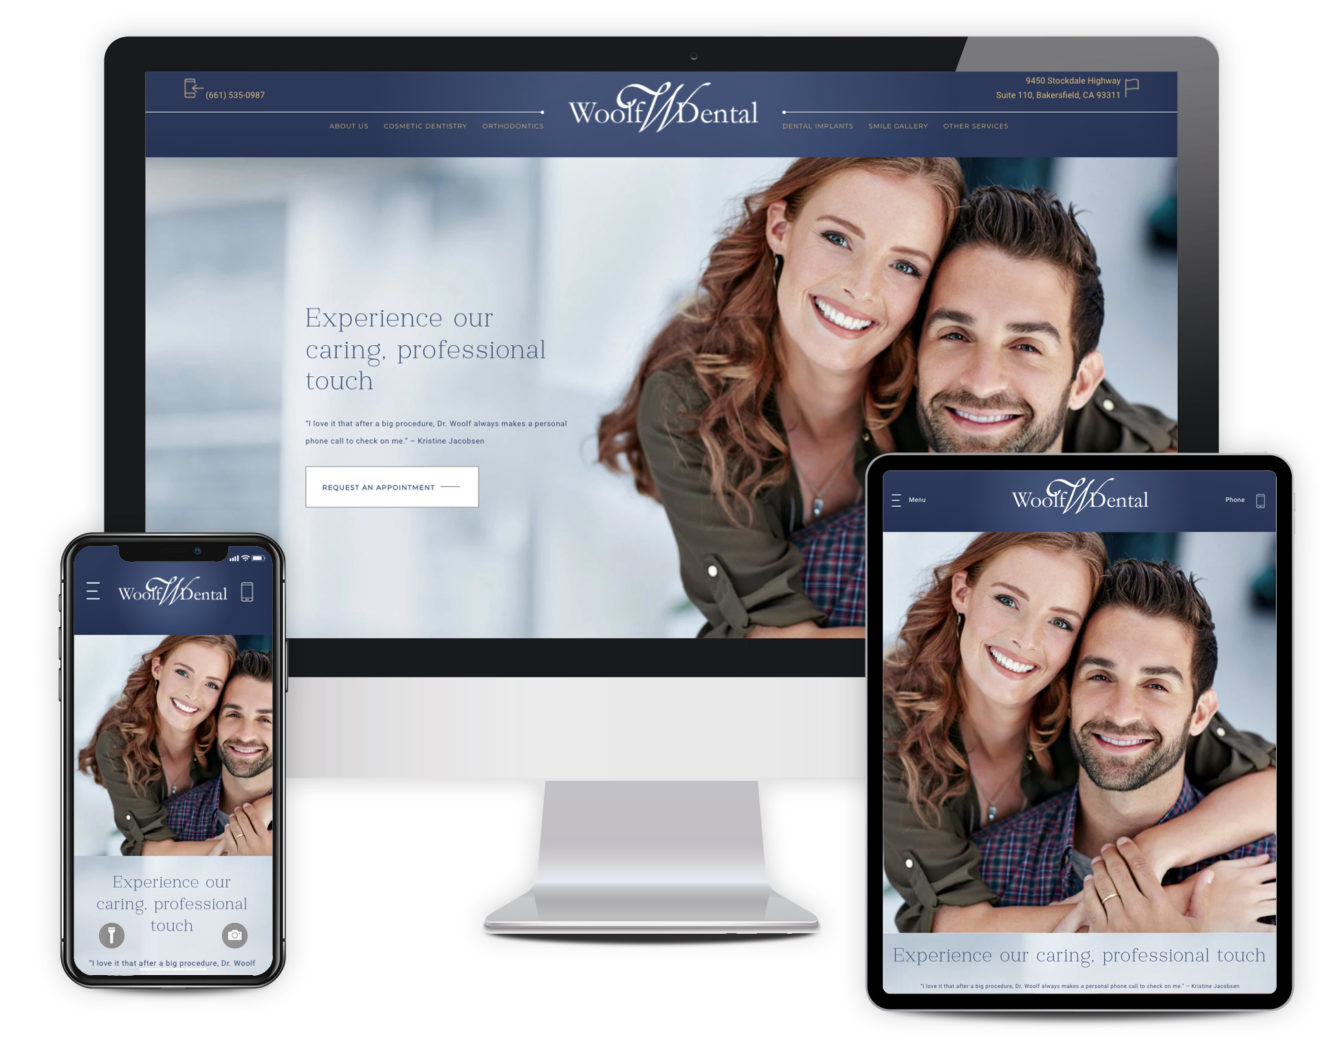 Woolf Dental Featured Image